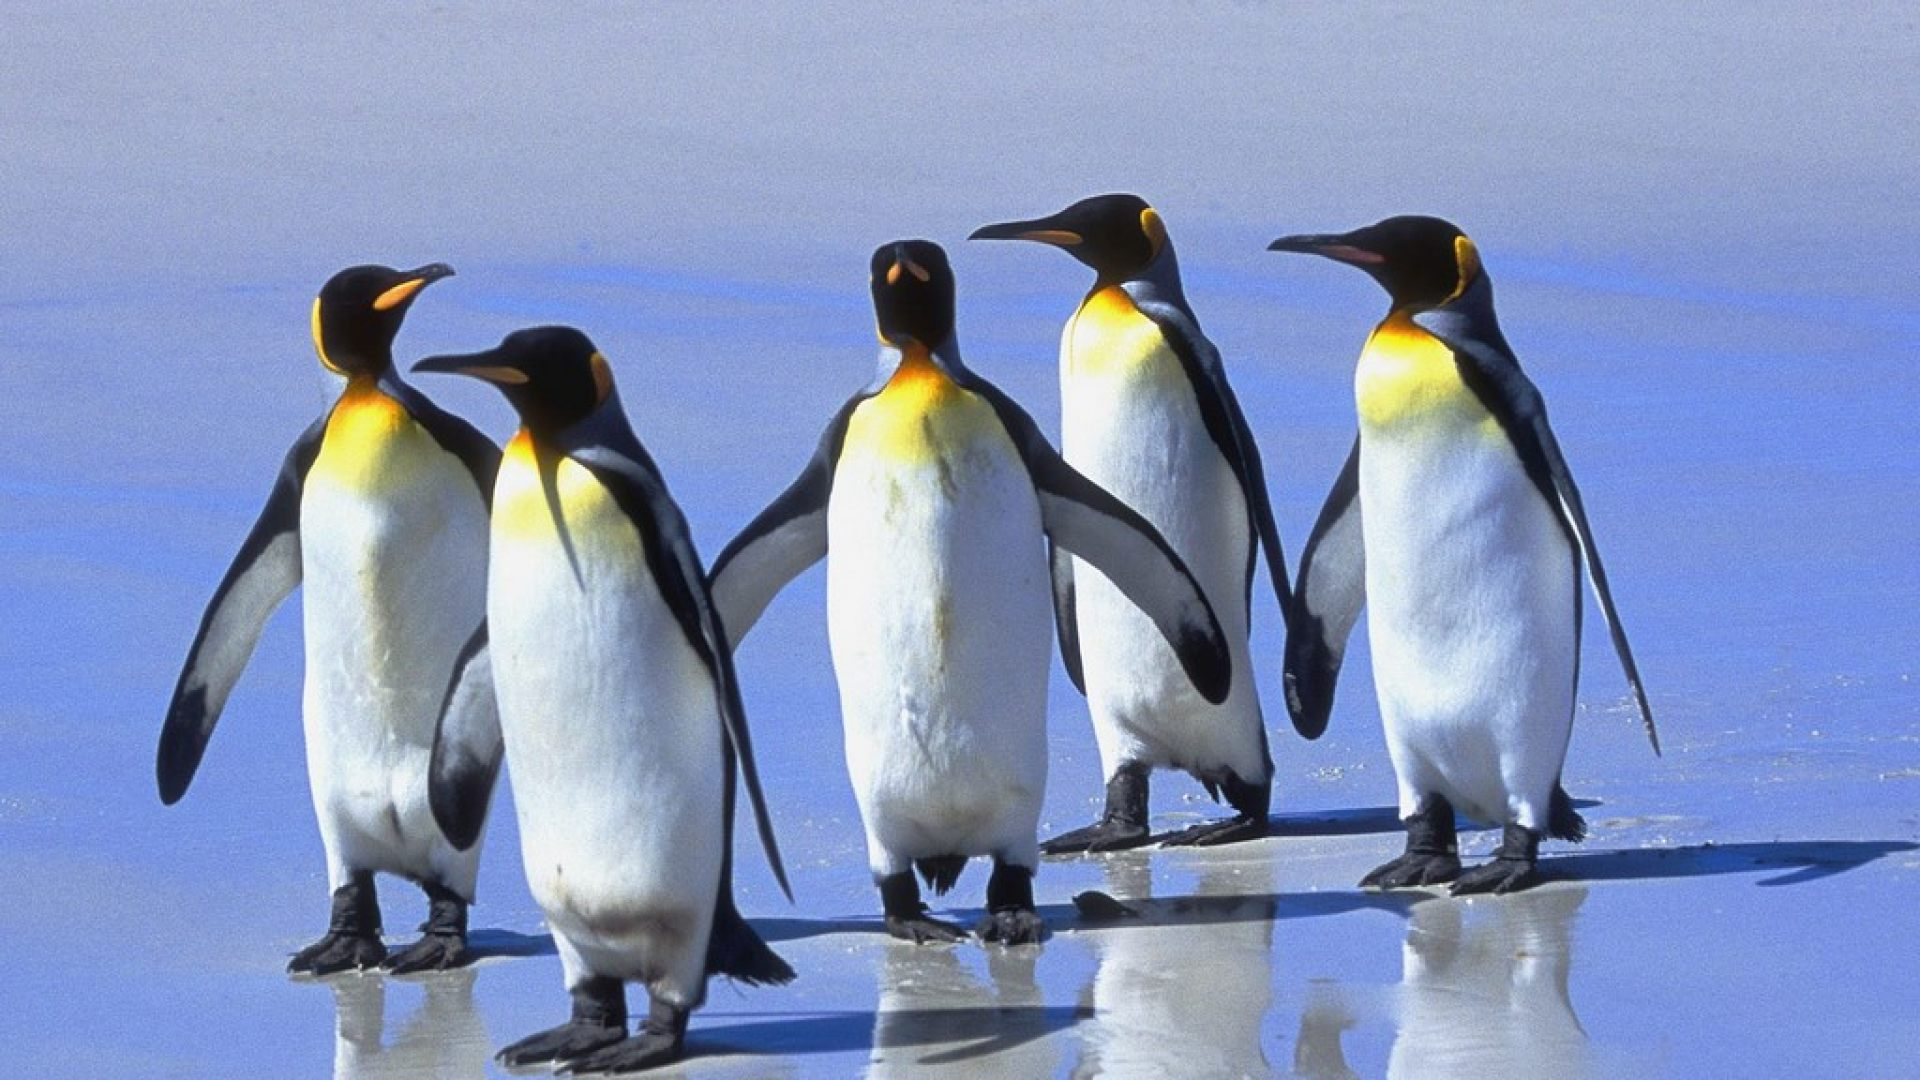 Seis animales que adoran el hielo / Six Animals that Love Ice